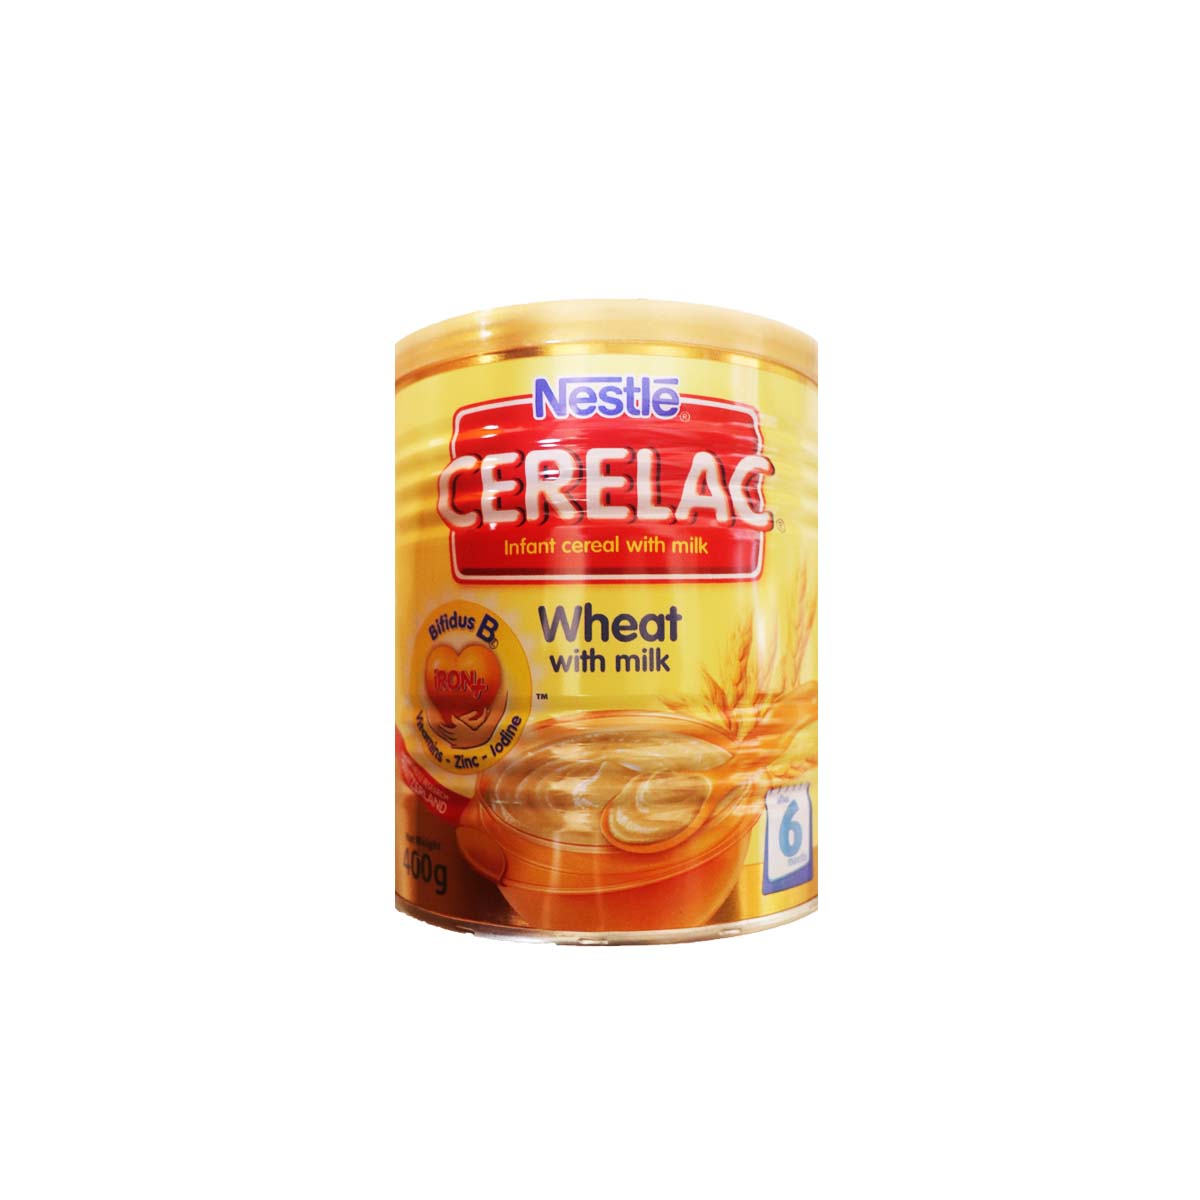 Cerelac Infant Cereal Wheat With Milk 400g